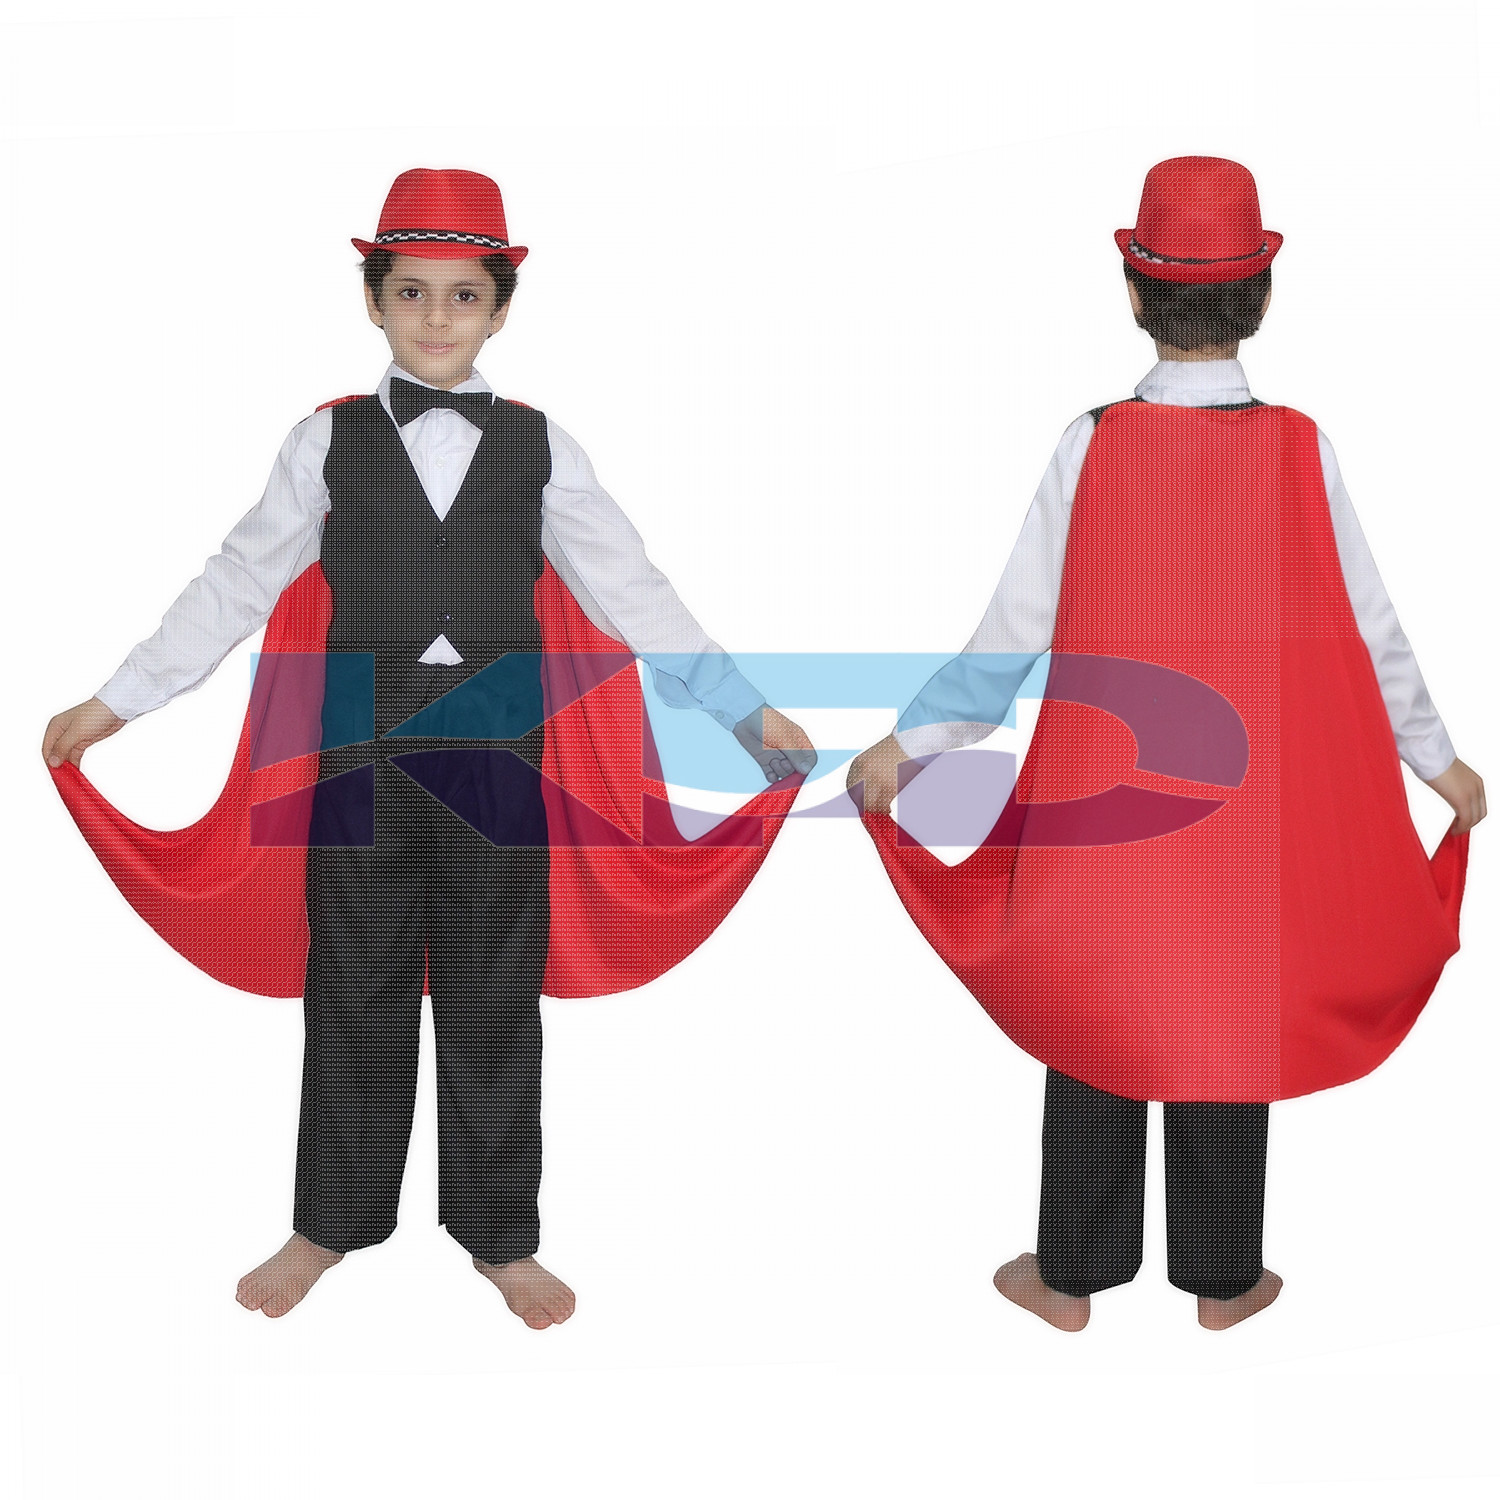 Magician Fancy dress for kids,Performer/Entertainer/Magical Shows Costume for Annual function/Theme Party/Competition/Stage Shows/Birthday Party Dress